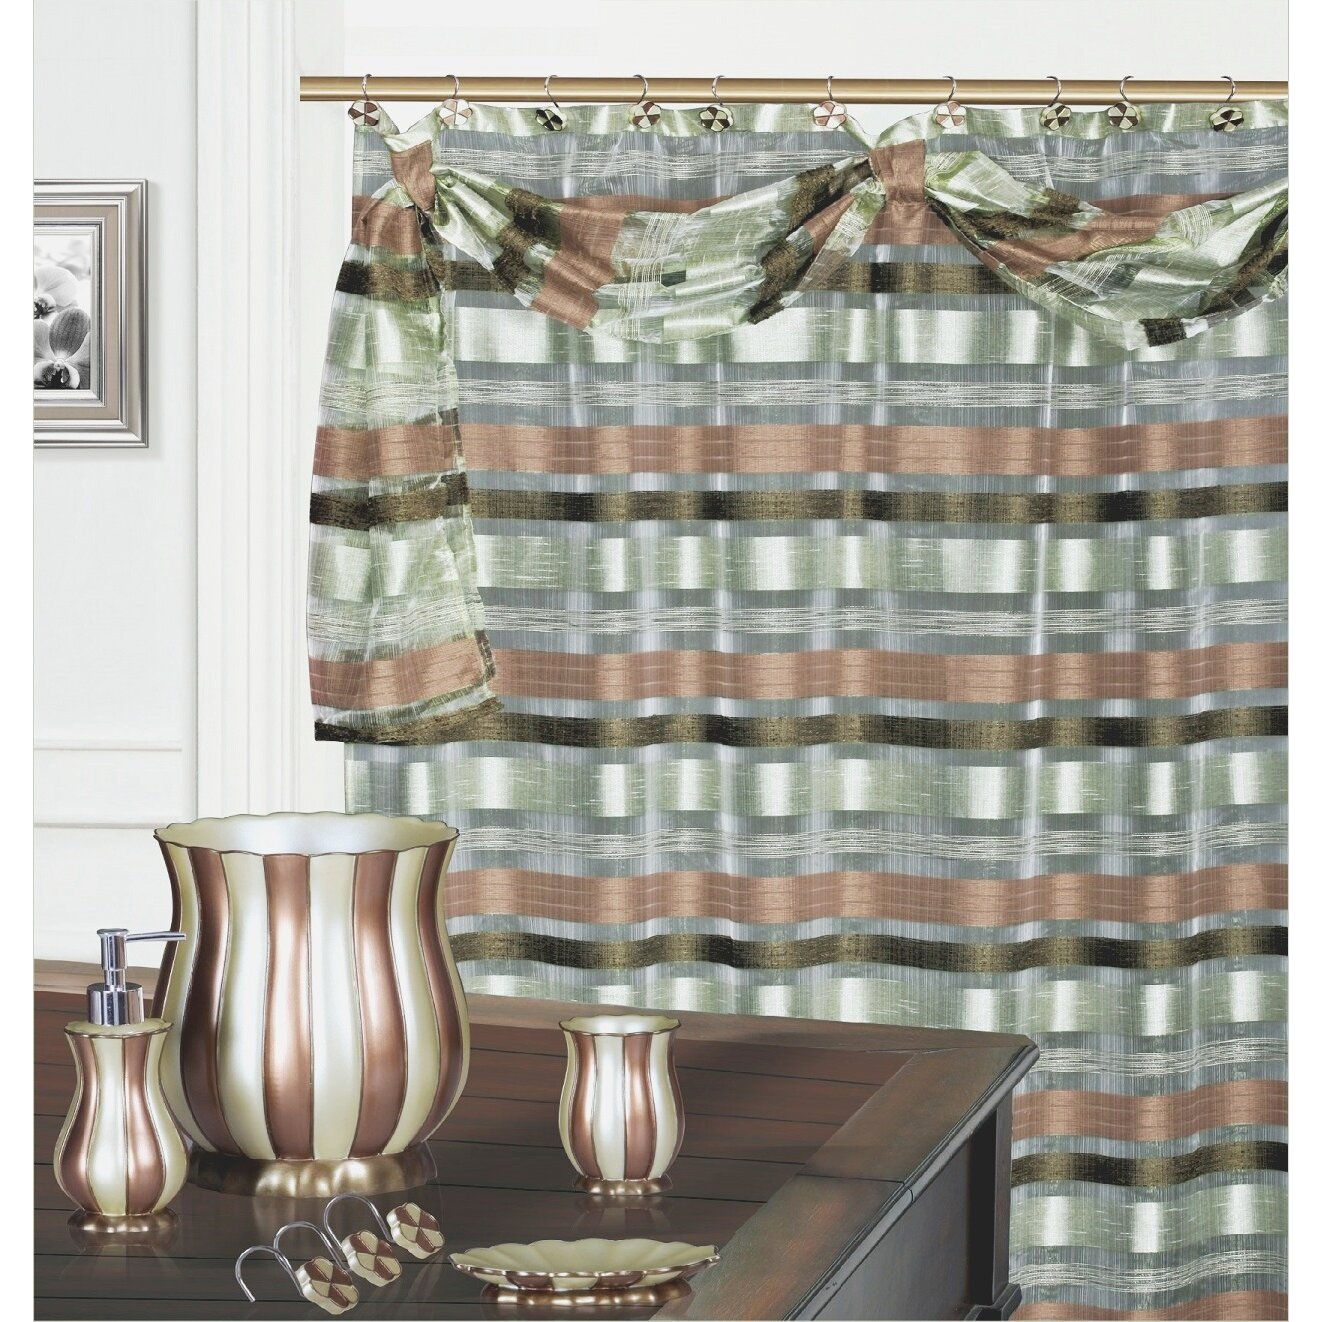 Daniels Bath Elisa Decorative Shower Curtain Wayfair